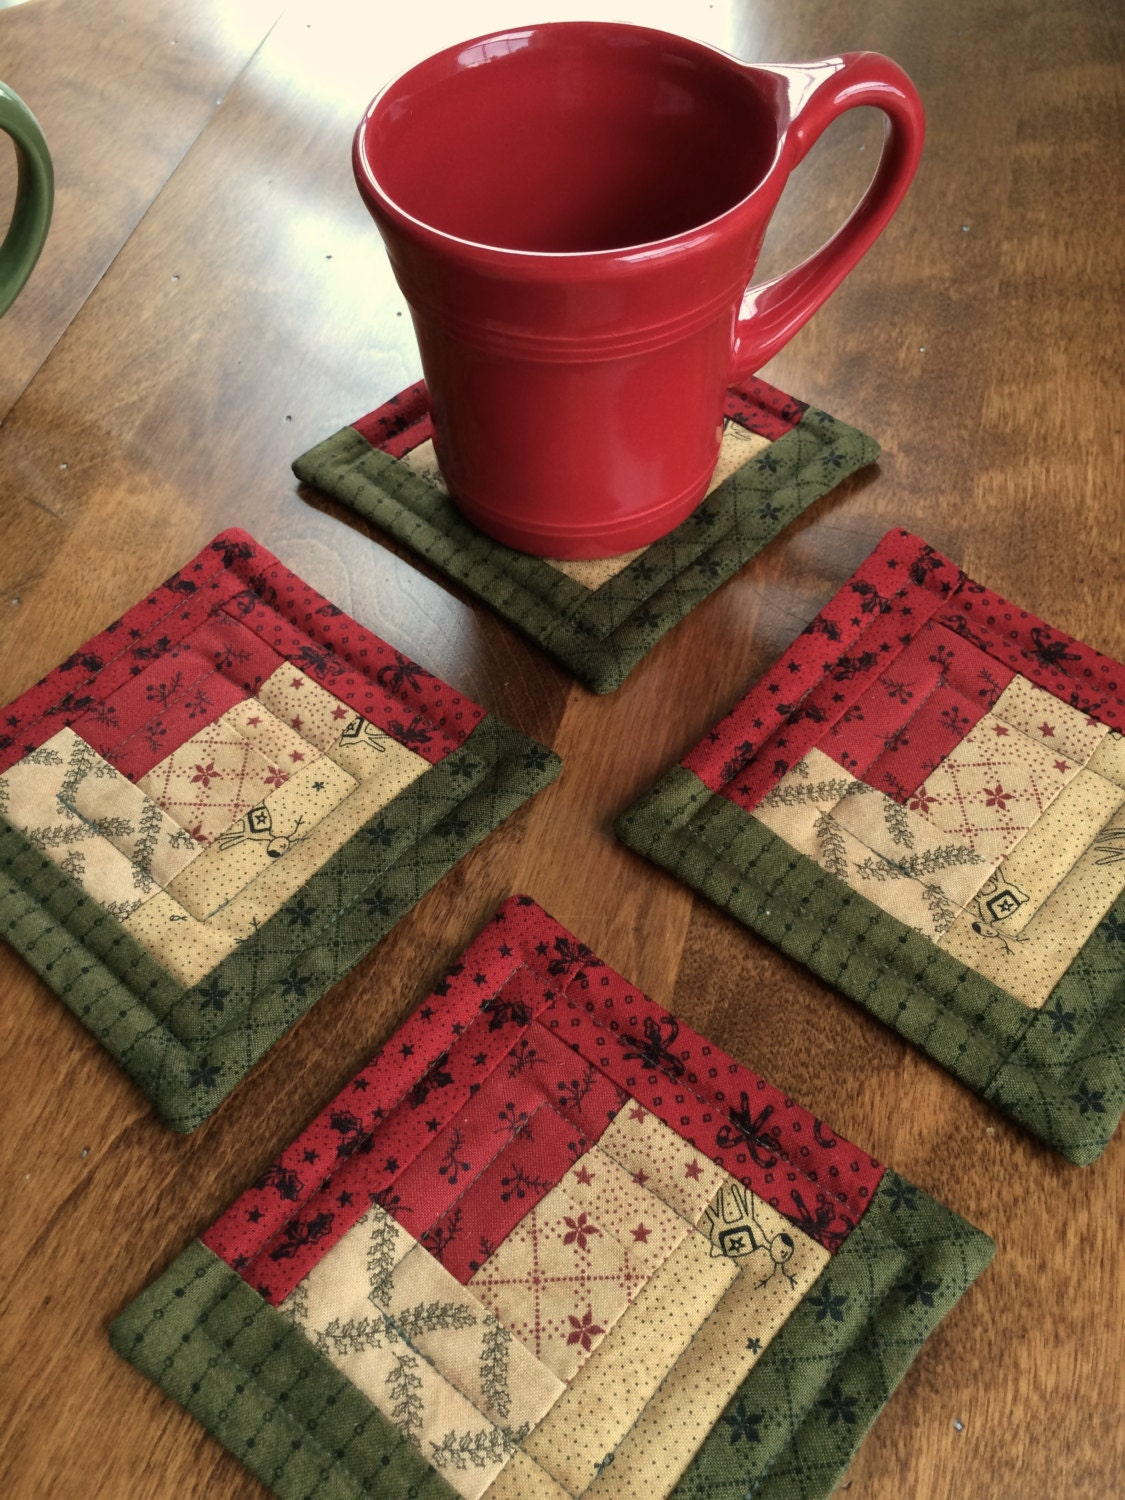 4 Quilted Log Cabin Christmas Coasters Moda Fabrics In Red